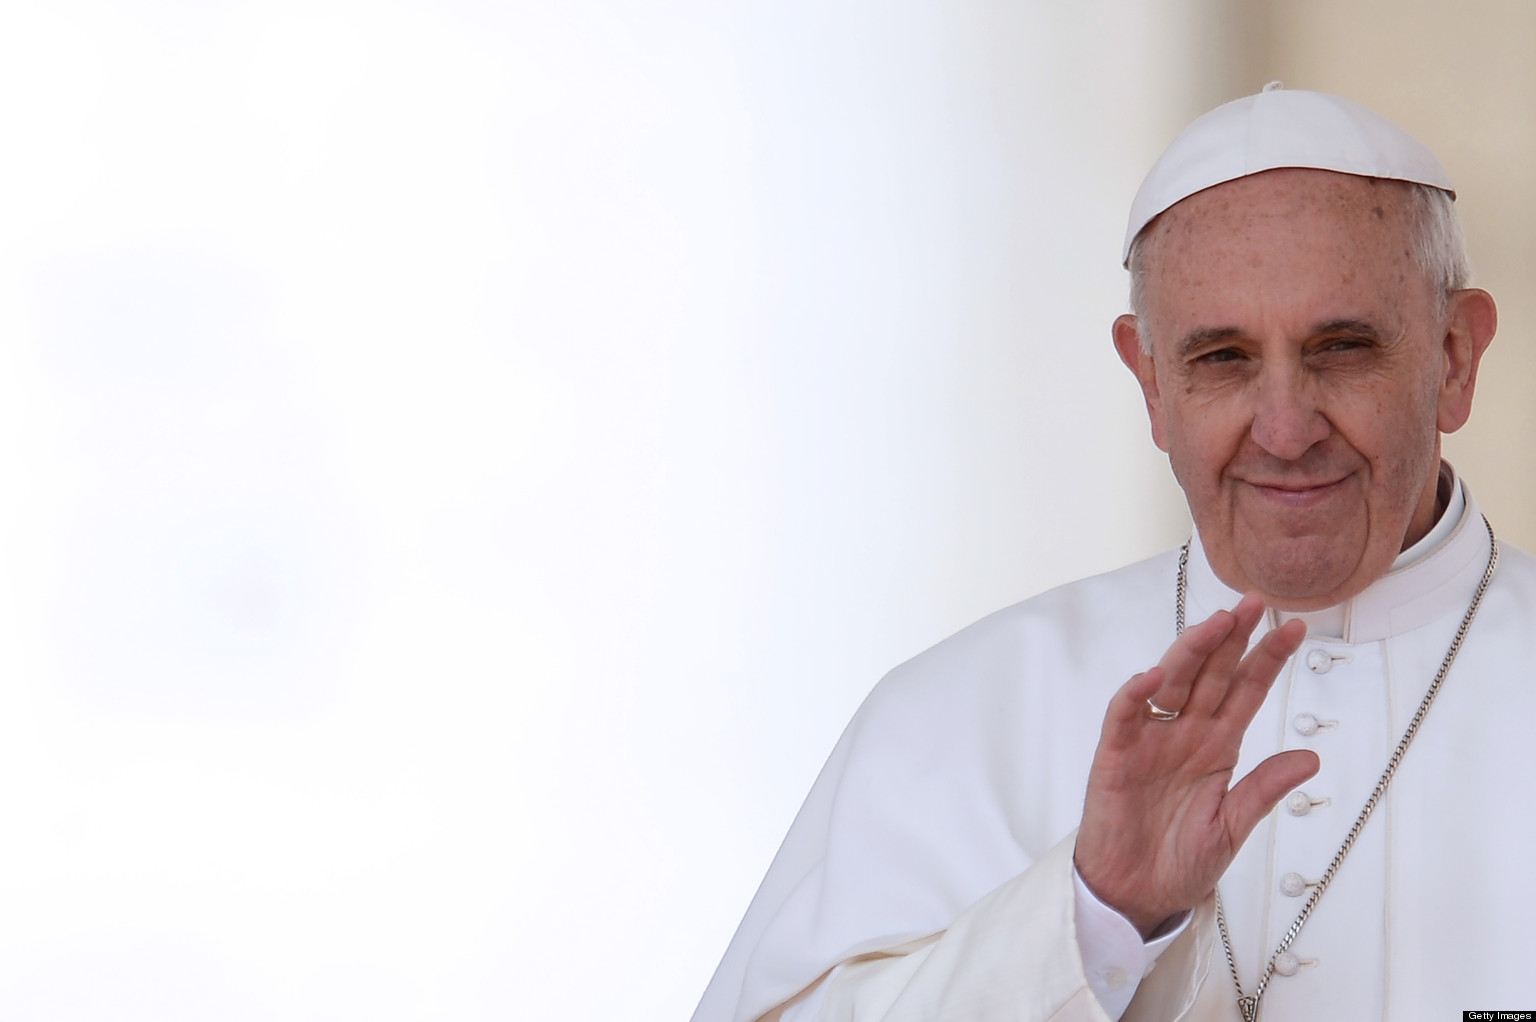 Pope Francis Says All Who Do Good Are Redeemed - Atheists Included